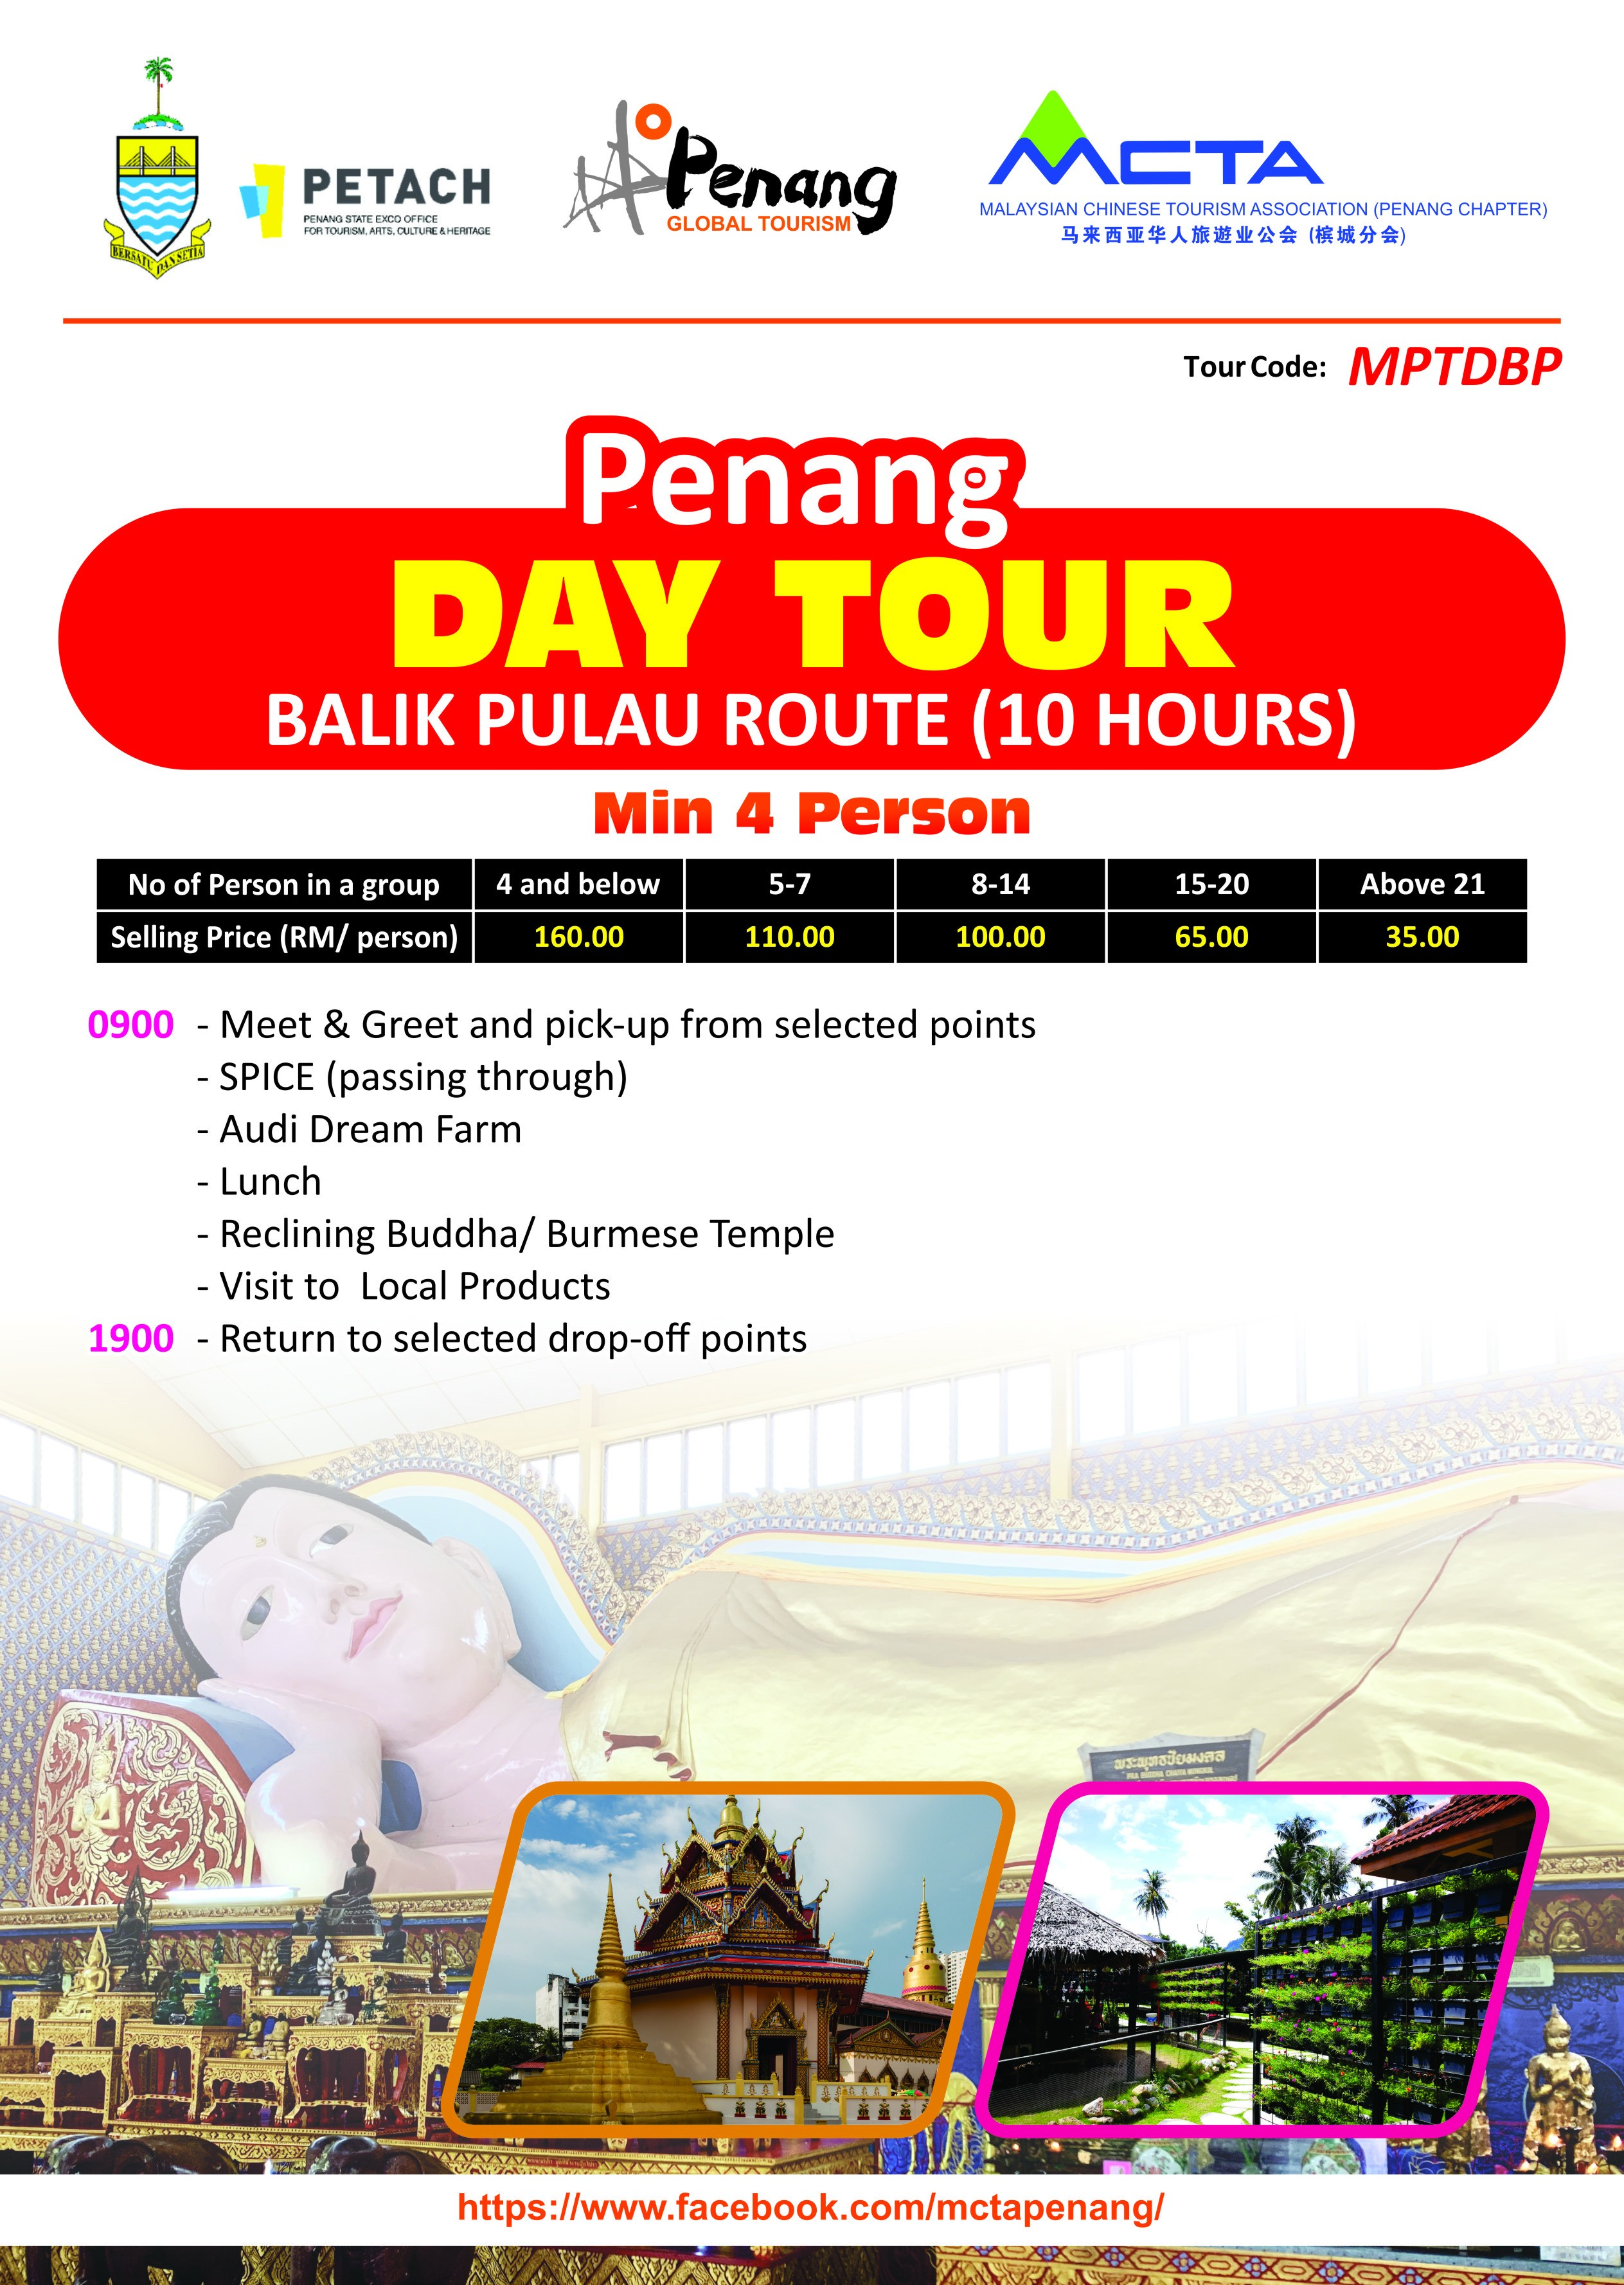 Penang Day Tour - Balik Pulau Route (10 Hours)